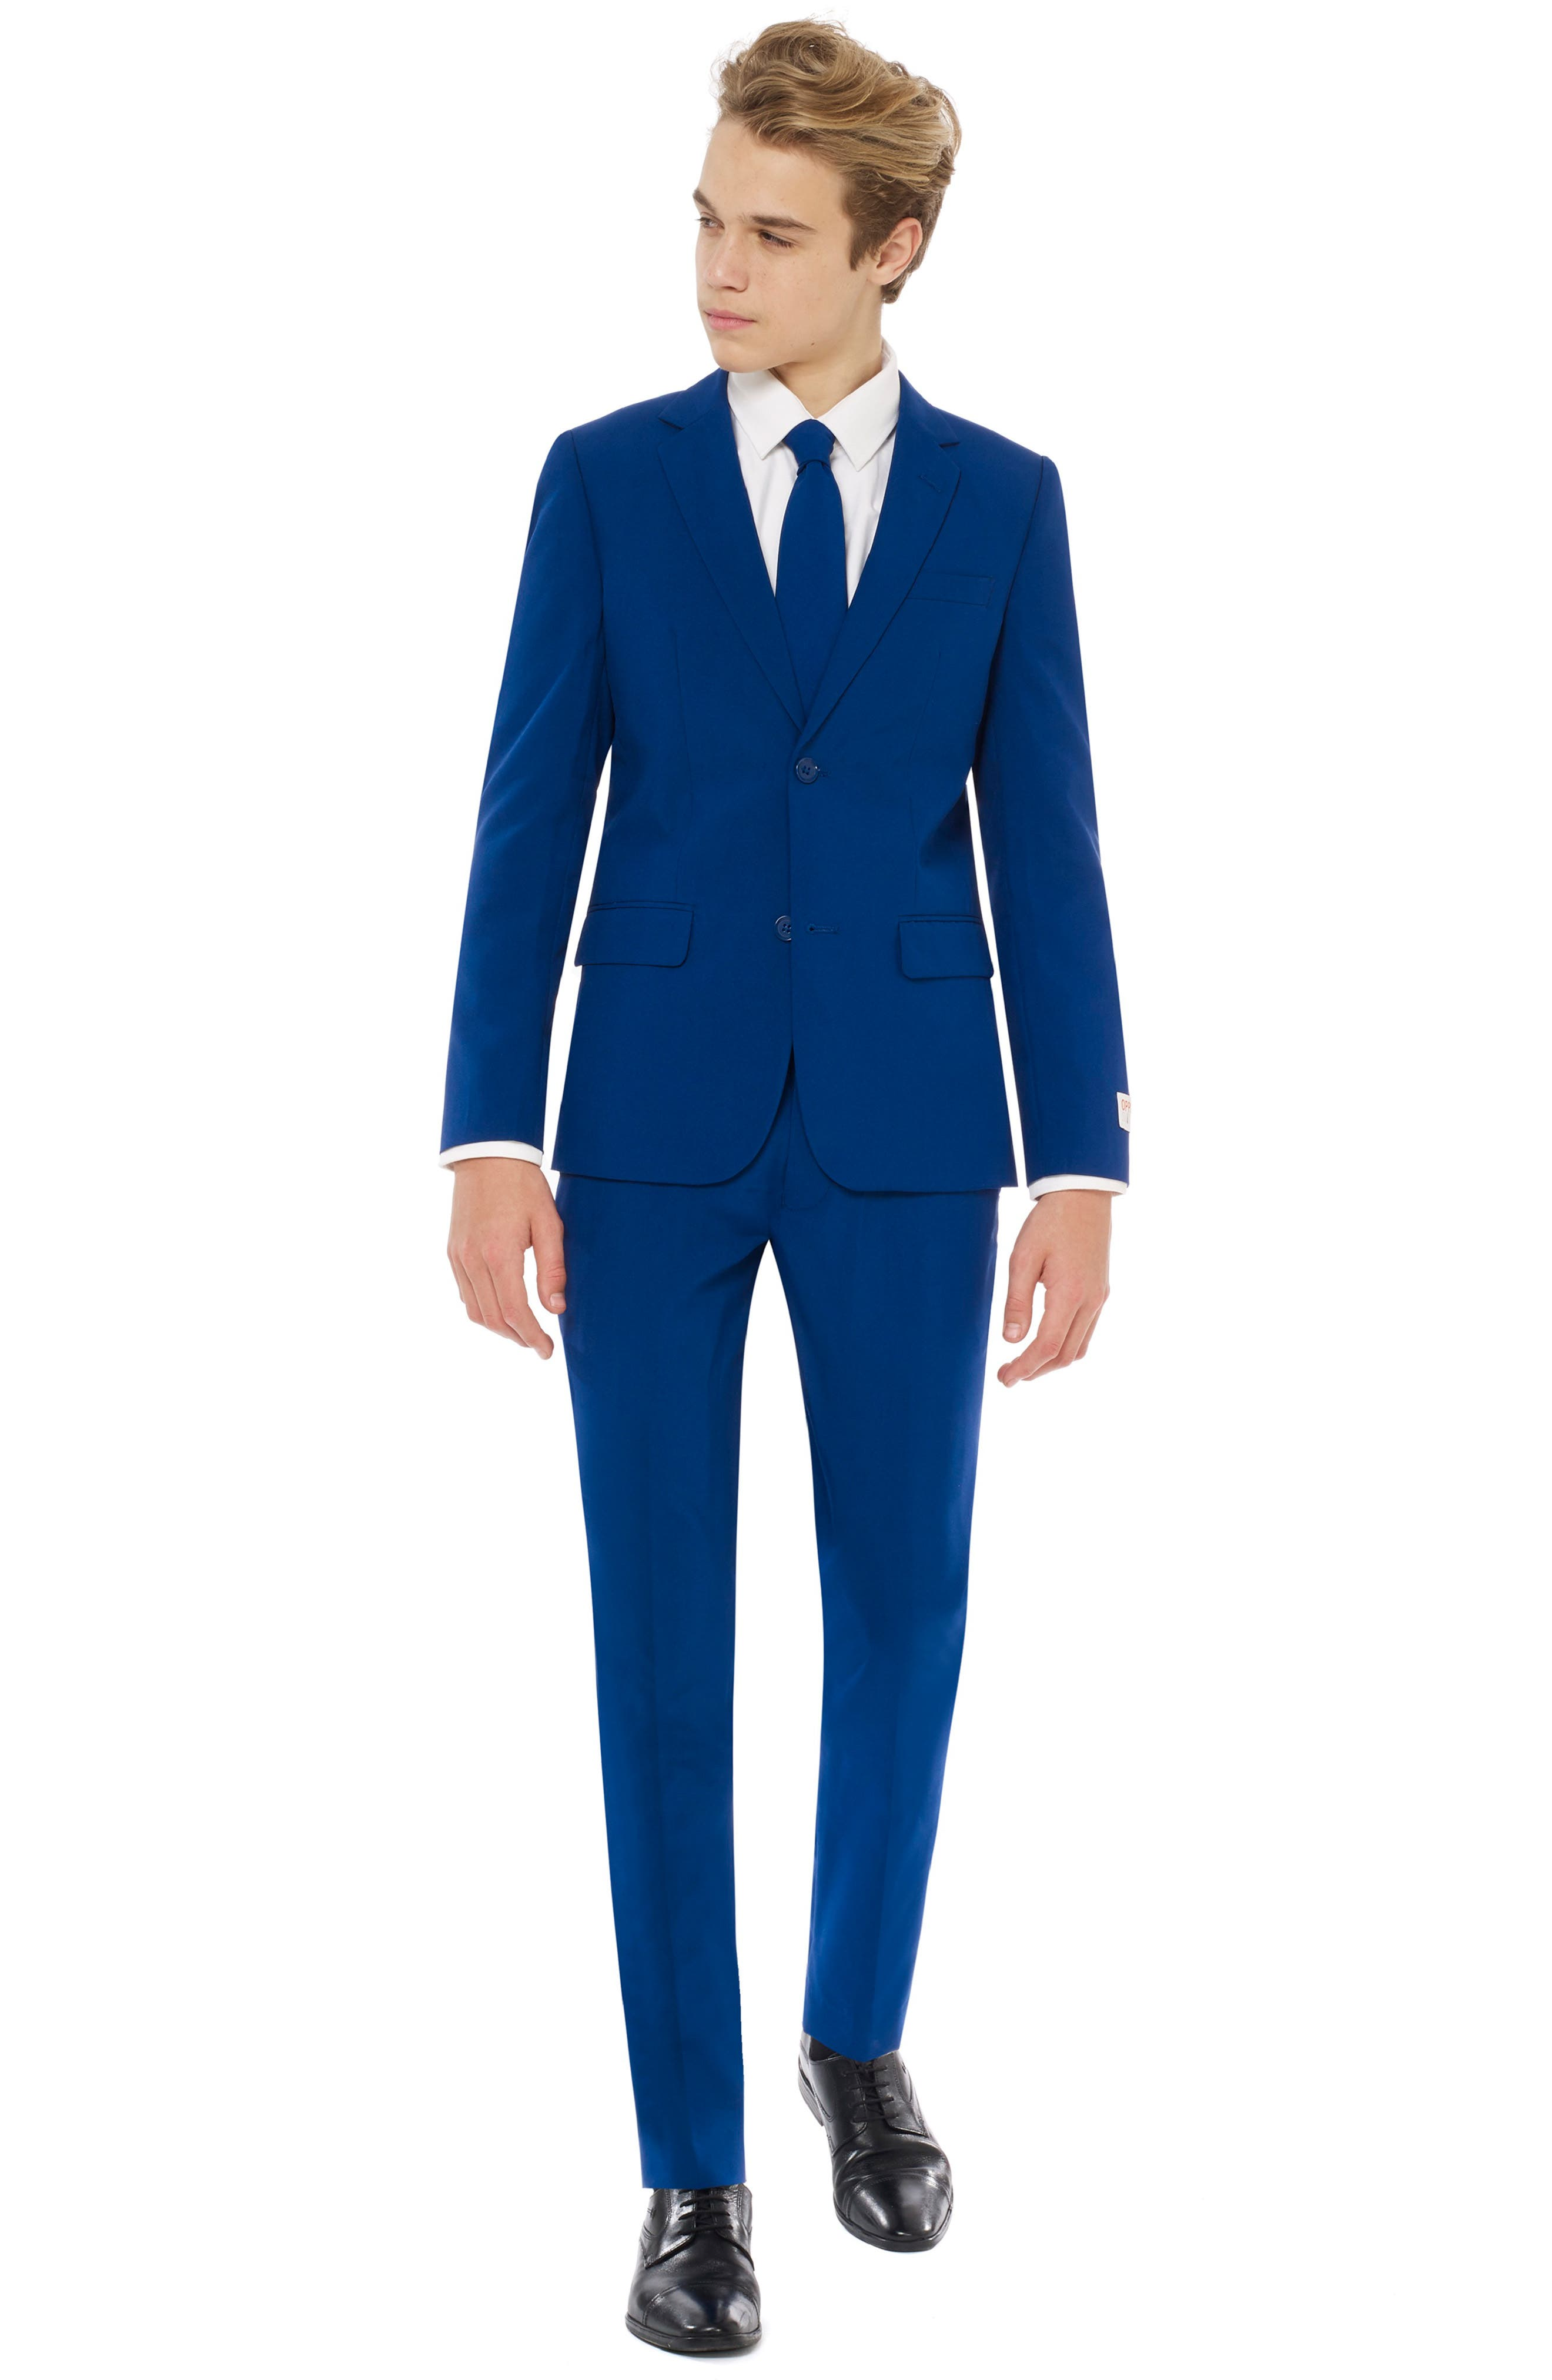 b5649024a457 Boys' Suits & Separates | Nordstrom